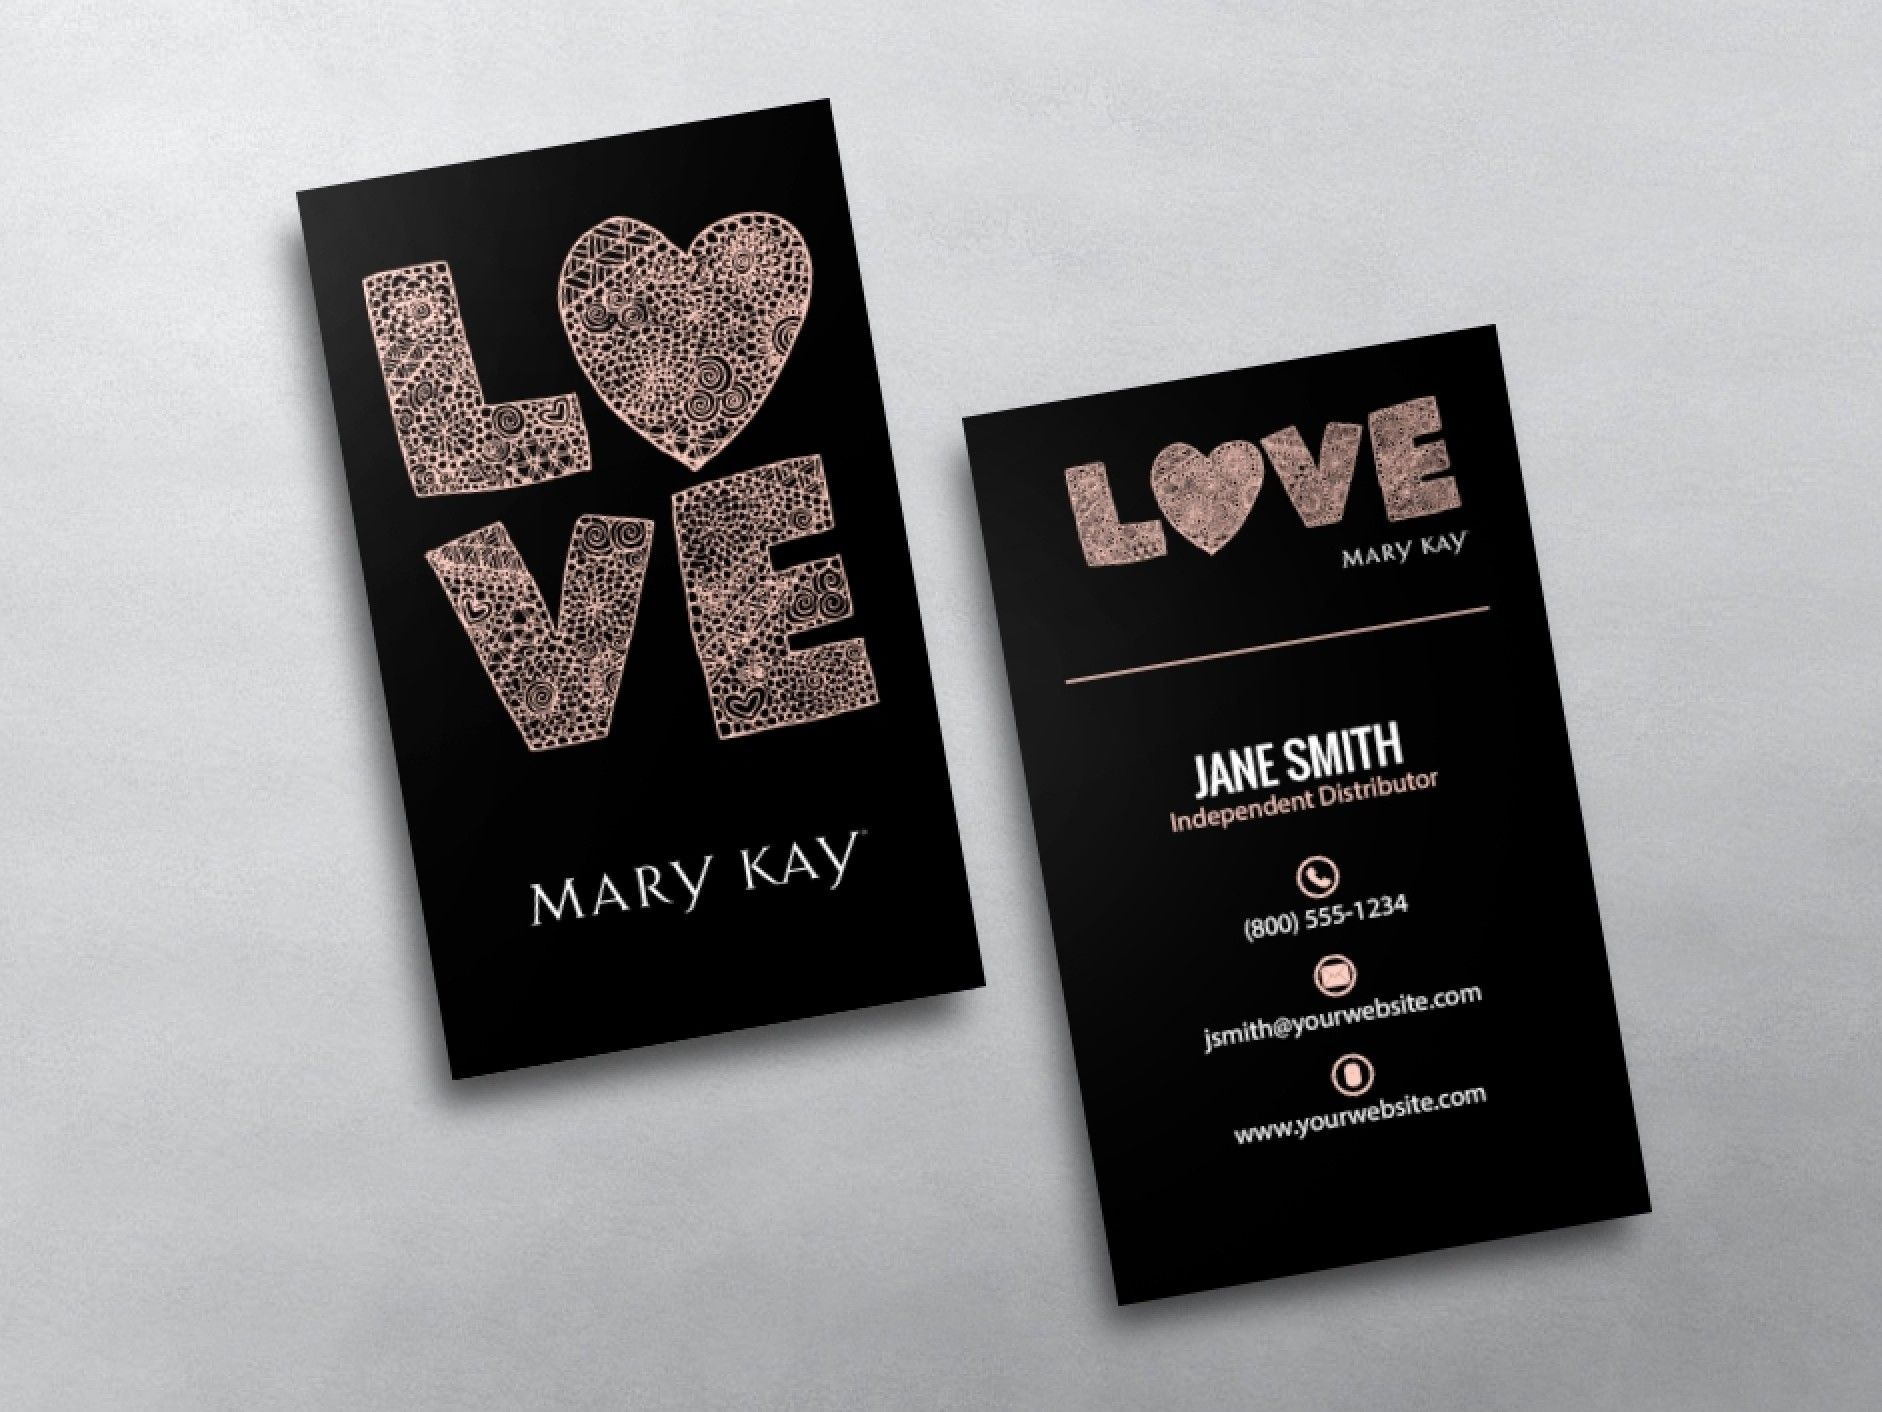 Mary Kay Business Cards | Mary Kay | Pinterest | Mary Kay, Free - Free Printable Mary Kay Business Cards